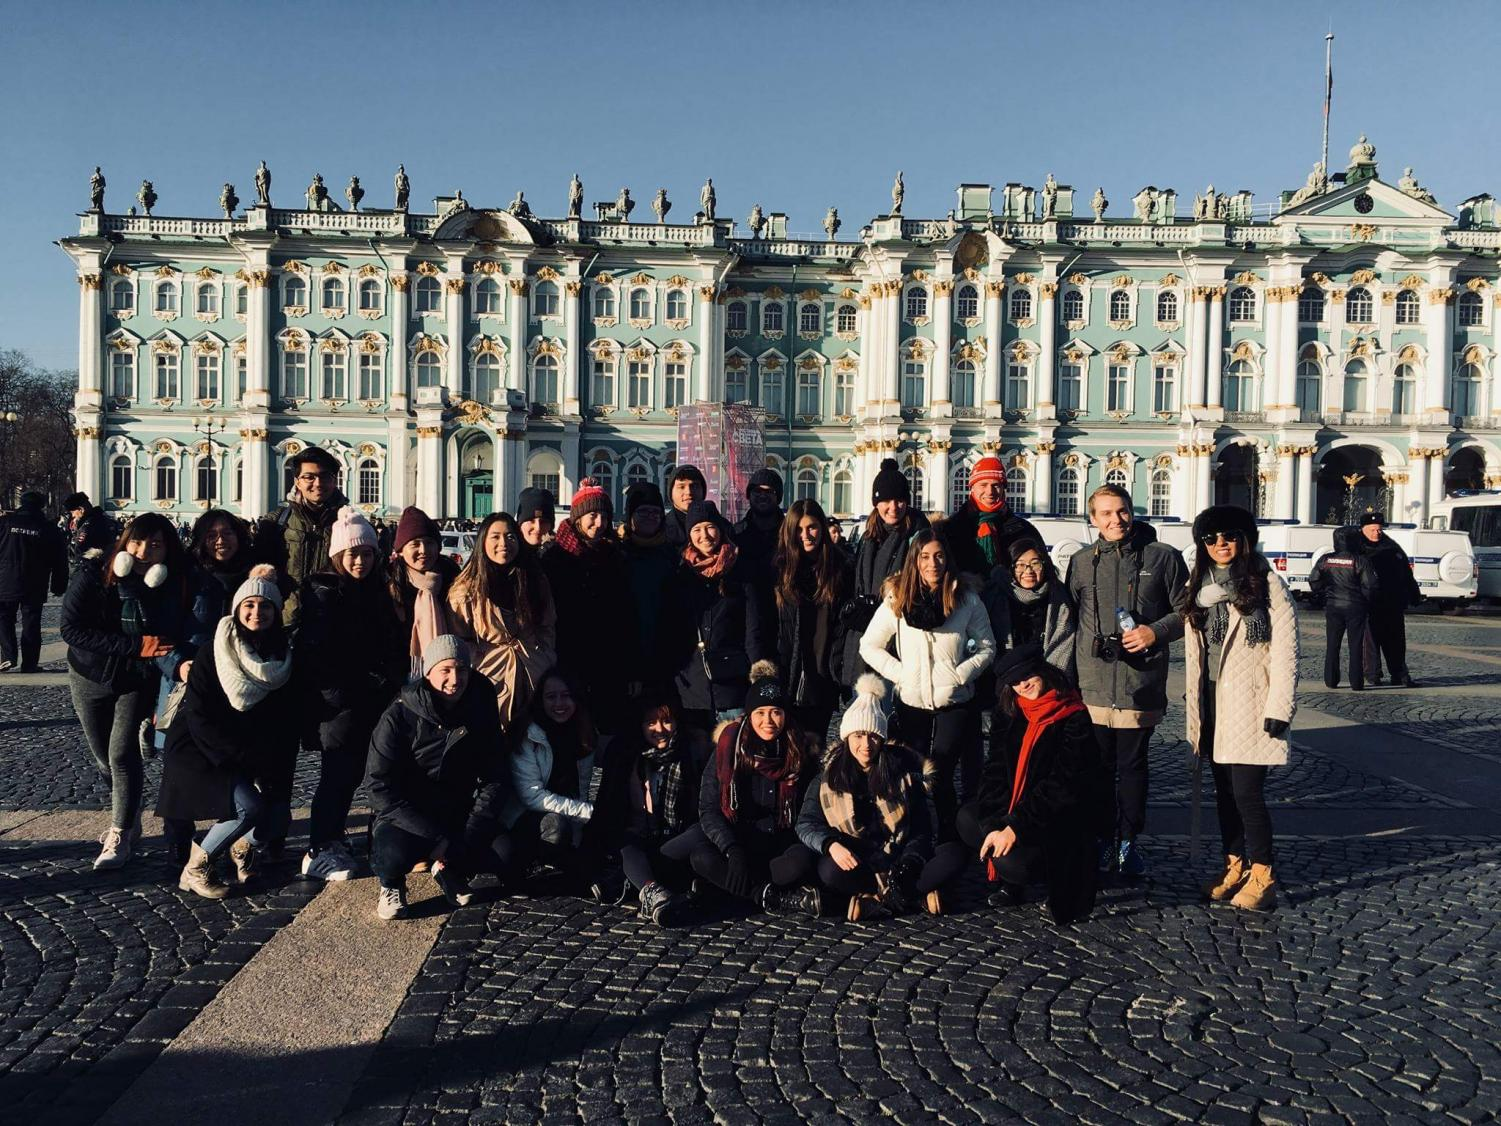 CUH student Bennett Romeo and other AIFS students posing in front of Catherine Palace, St. Petersburg, Russia.